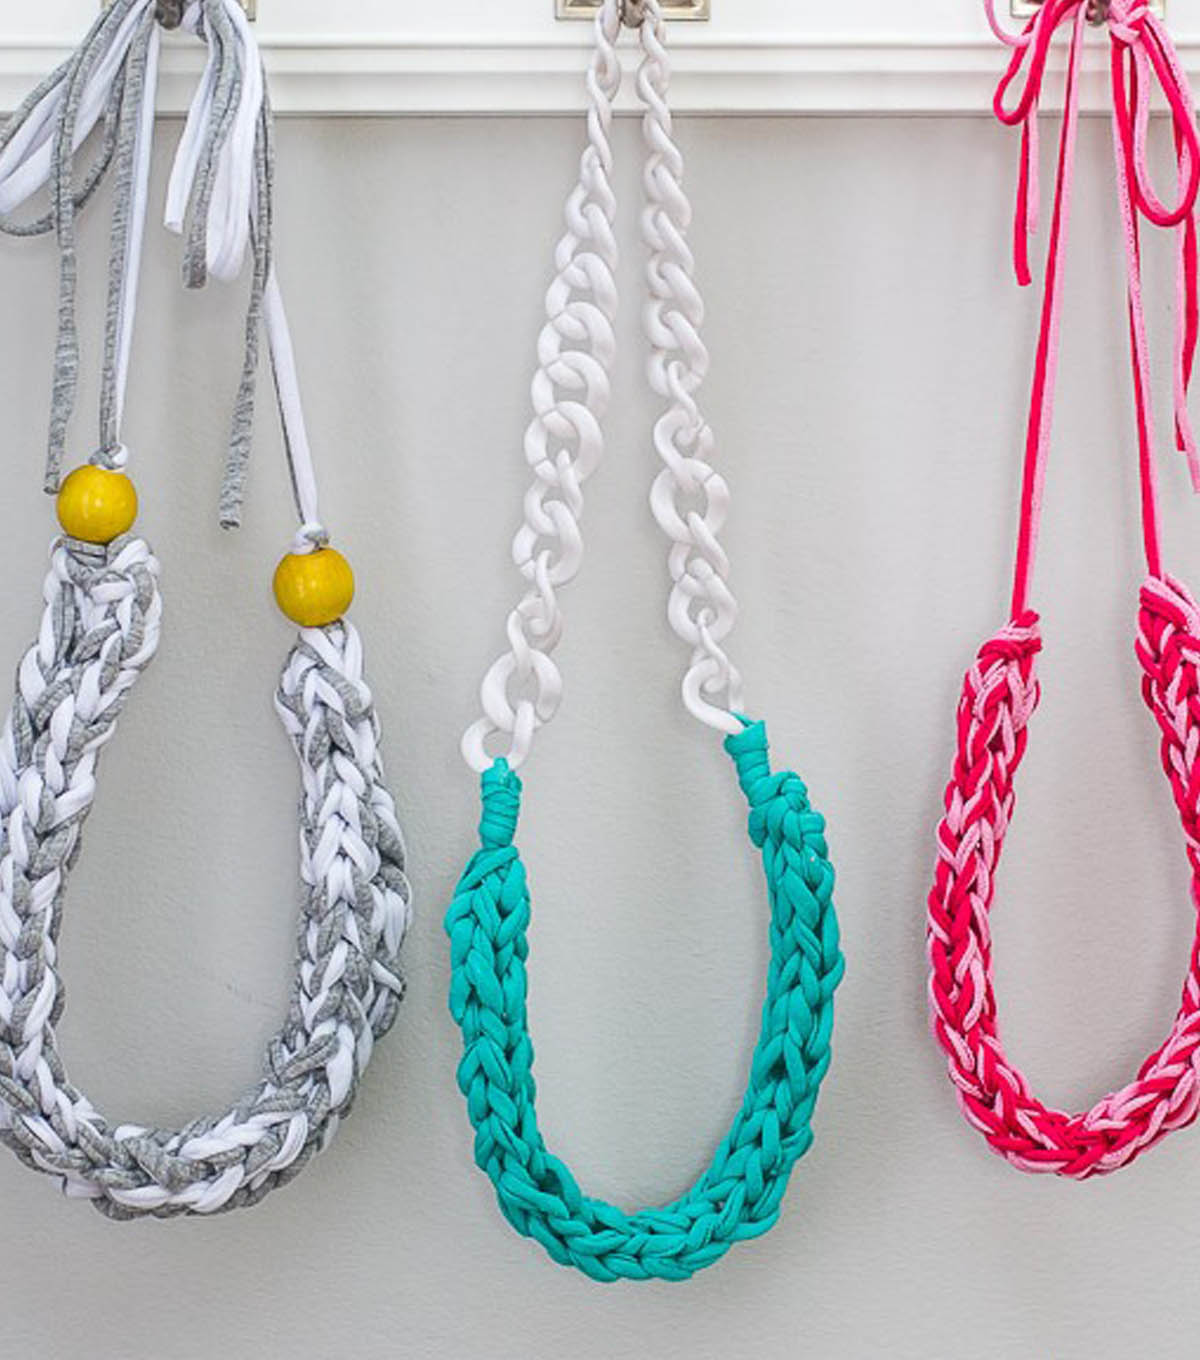 How to Make a T-Shirt Yarn Necklace